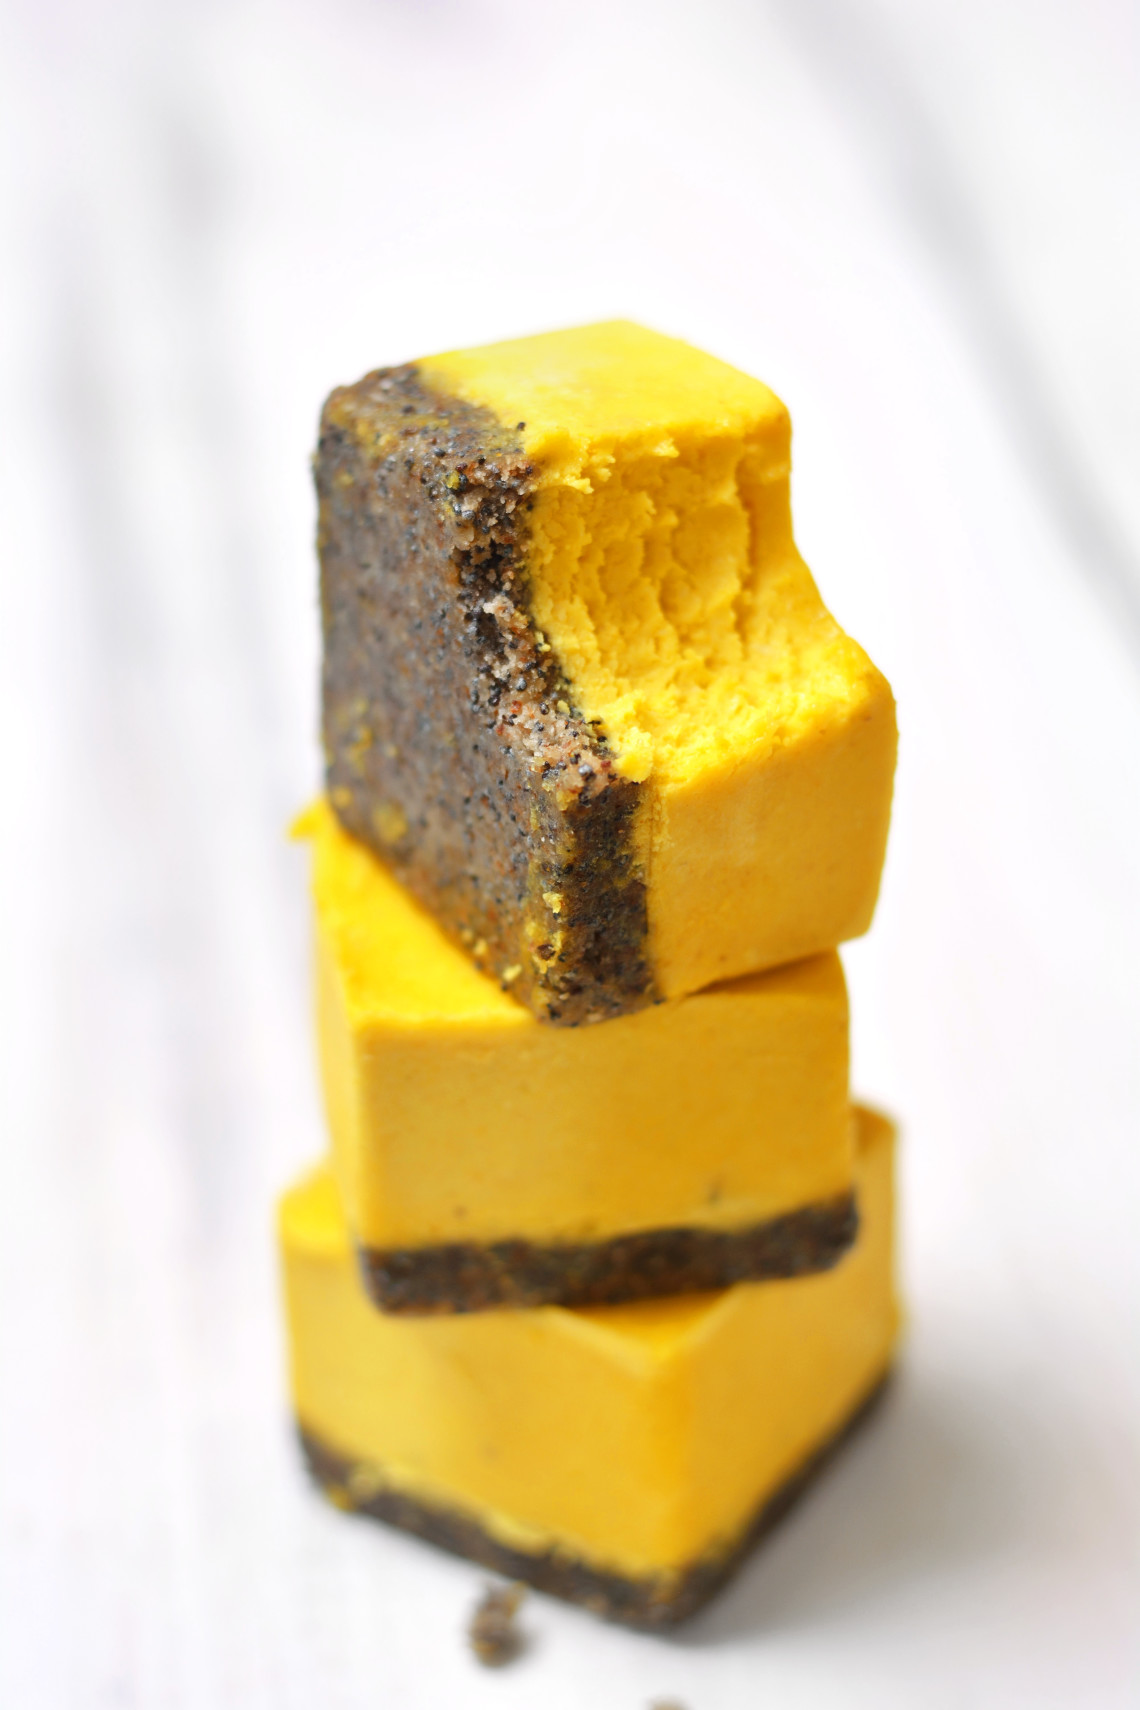 lemon-and-poppy-seed-cbd-cheesecake-squares-raw-vegan-paleo-3